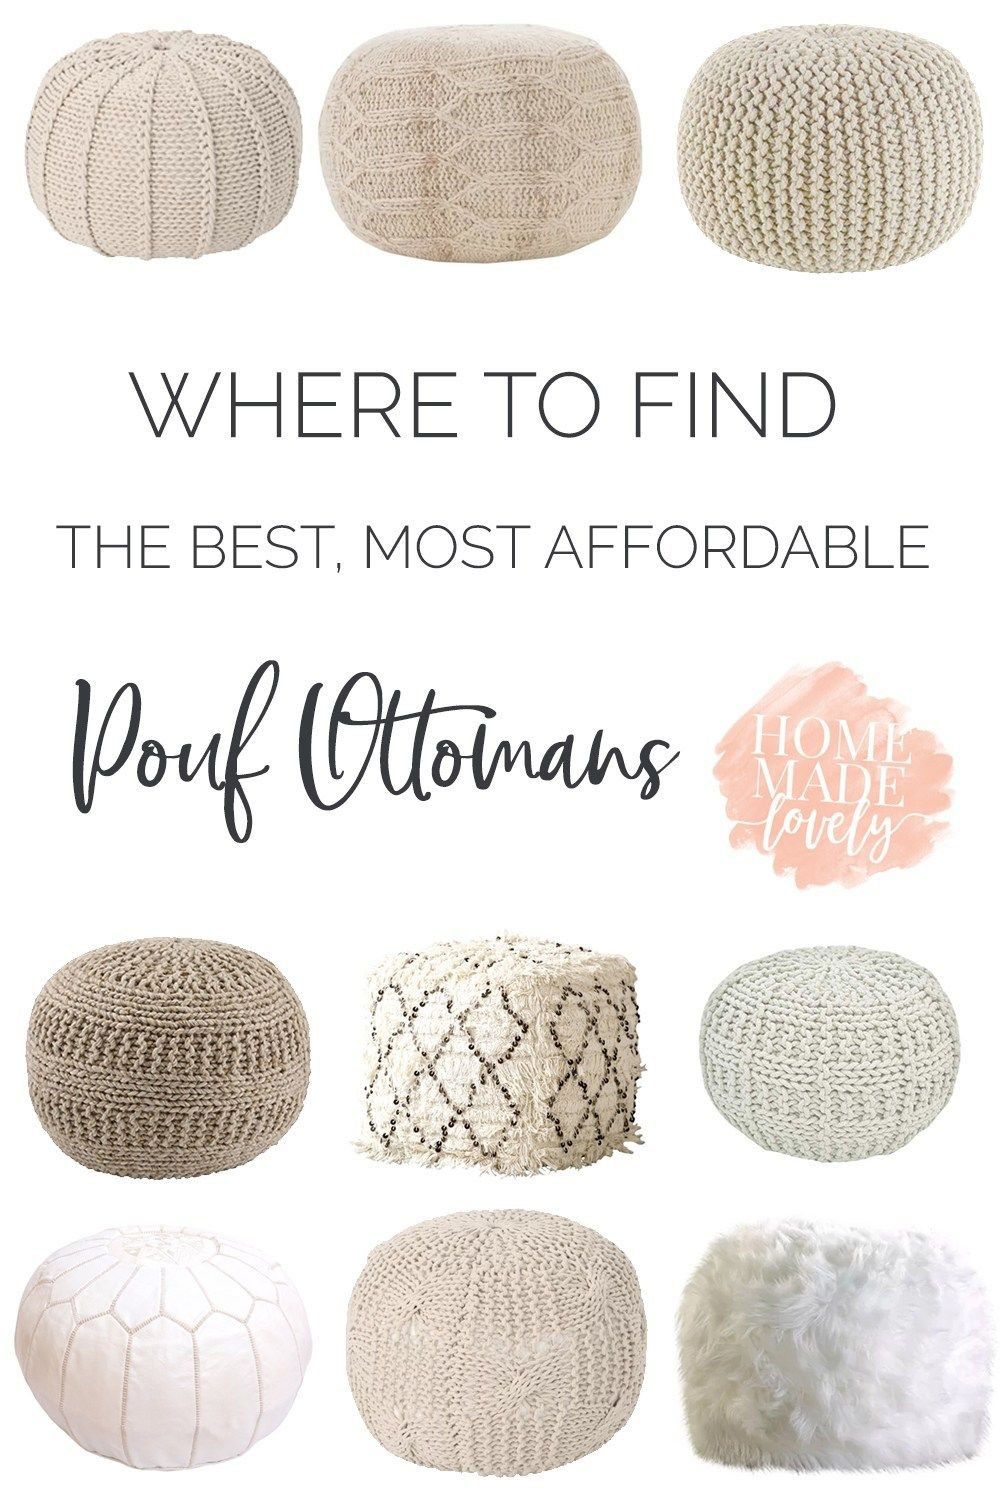 Where To Find The Best Most Affordable Pouf Ottomans Ottoman In